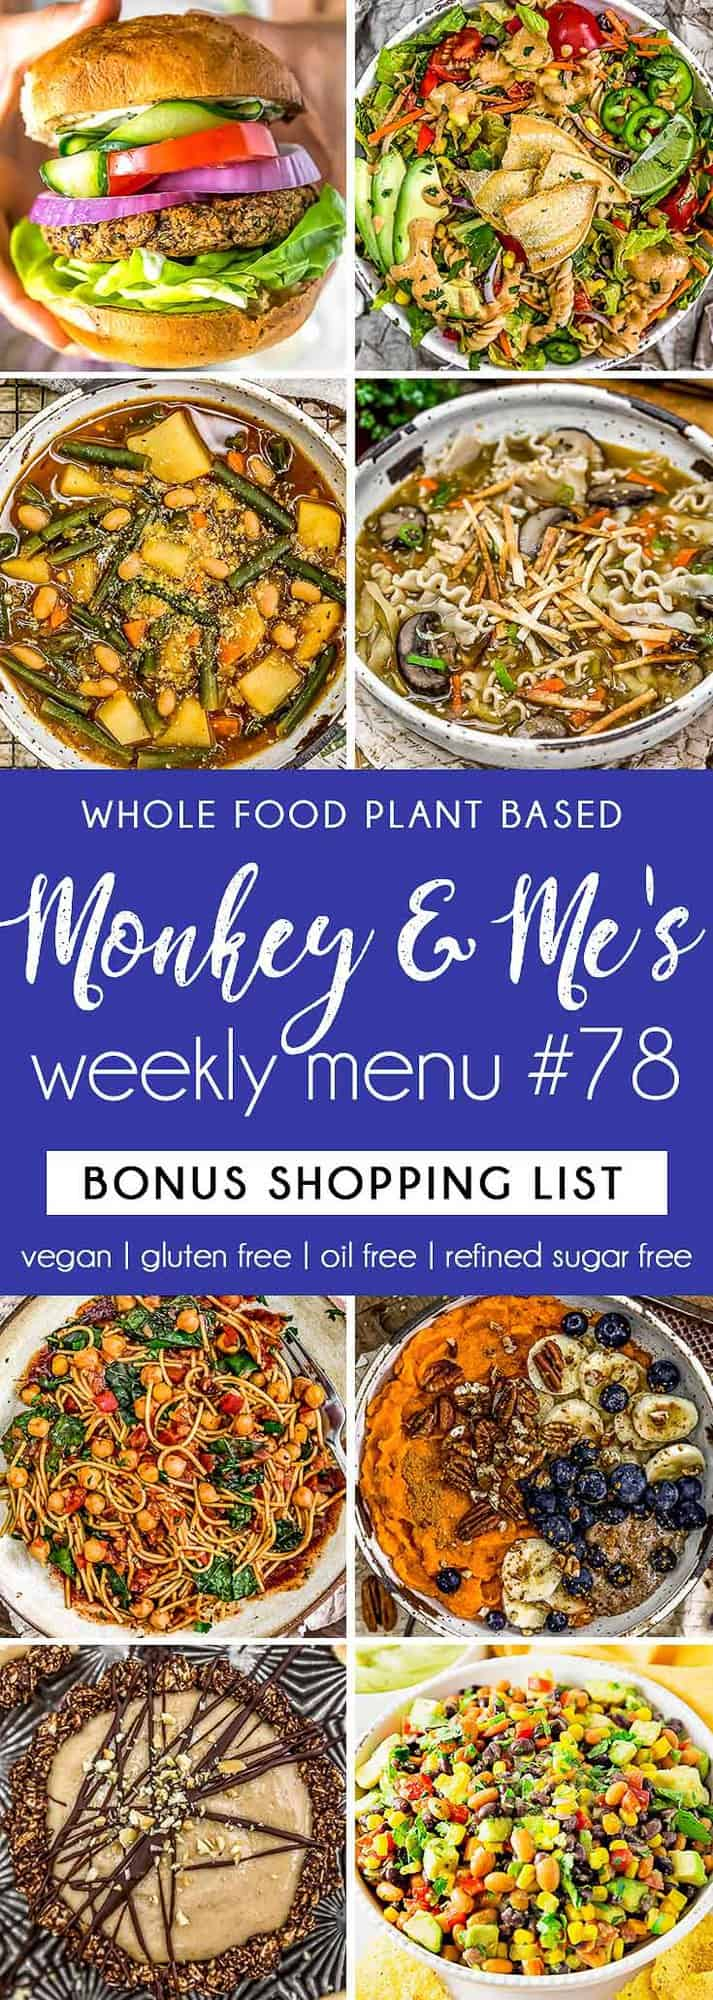 Monkey and Me's Menu 78 featuring 8 recipes